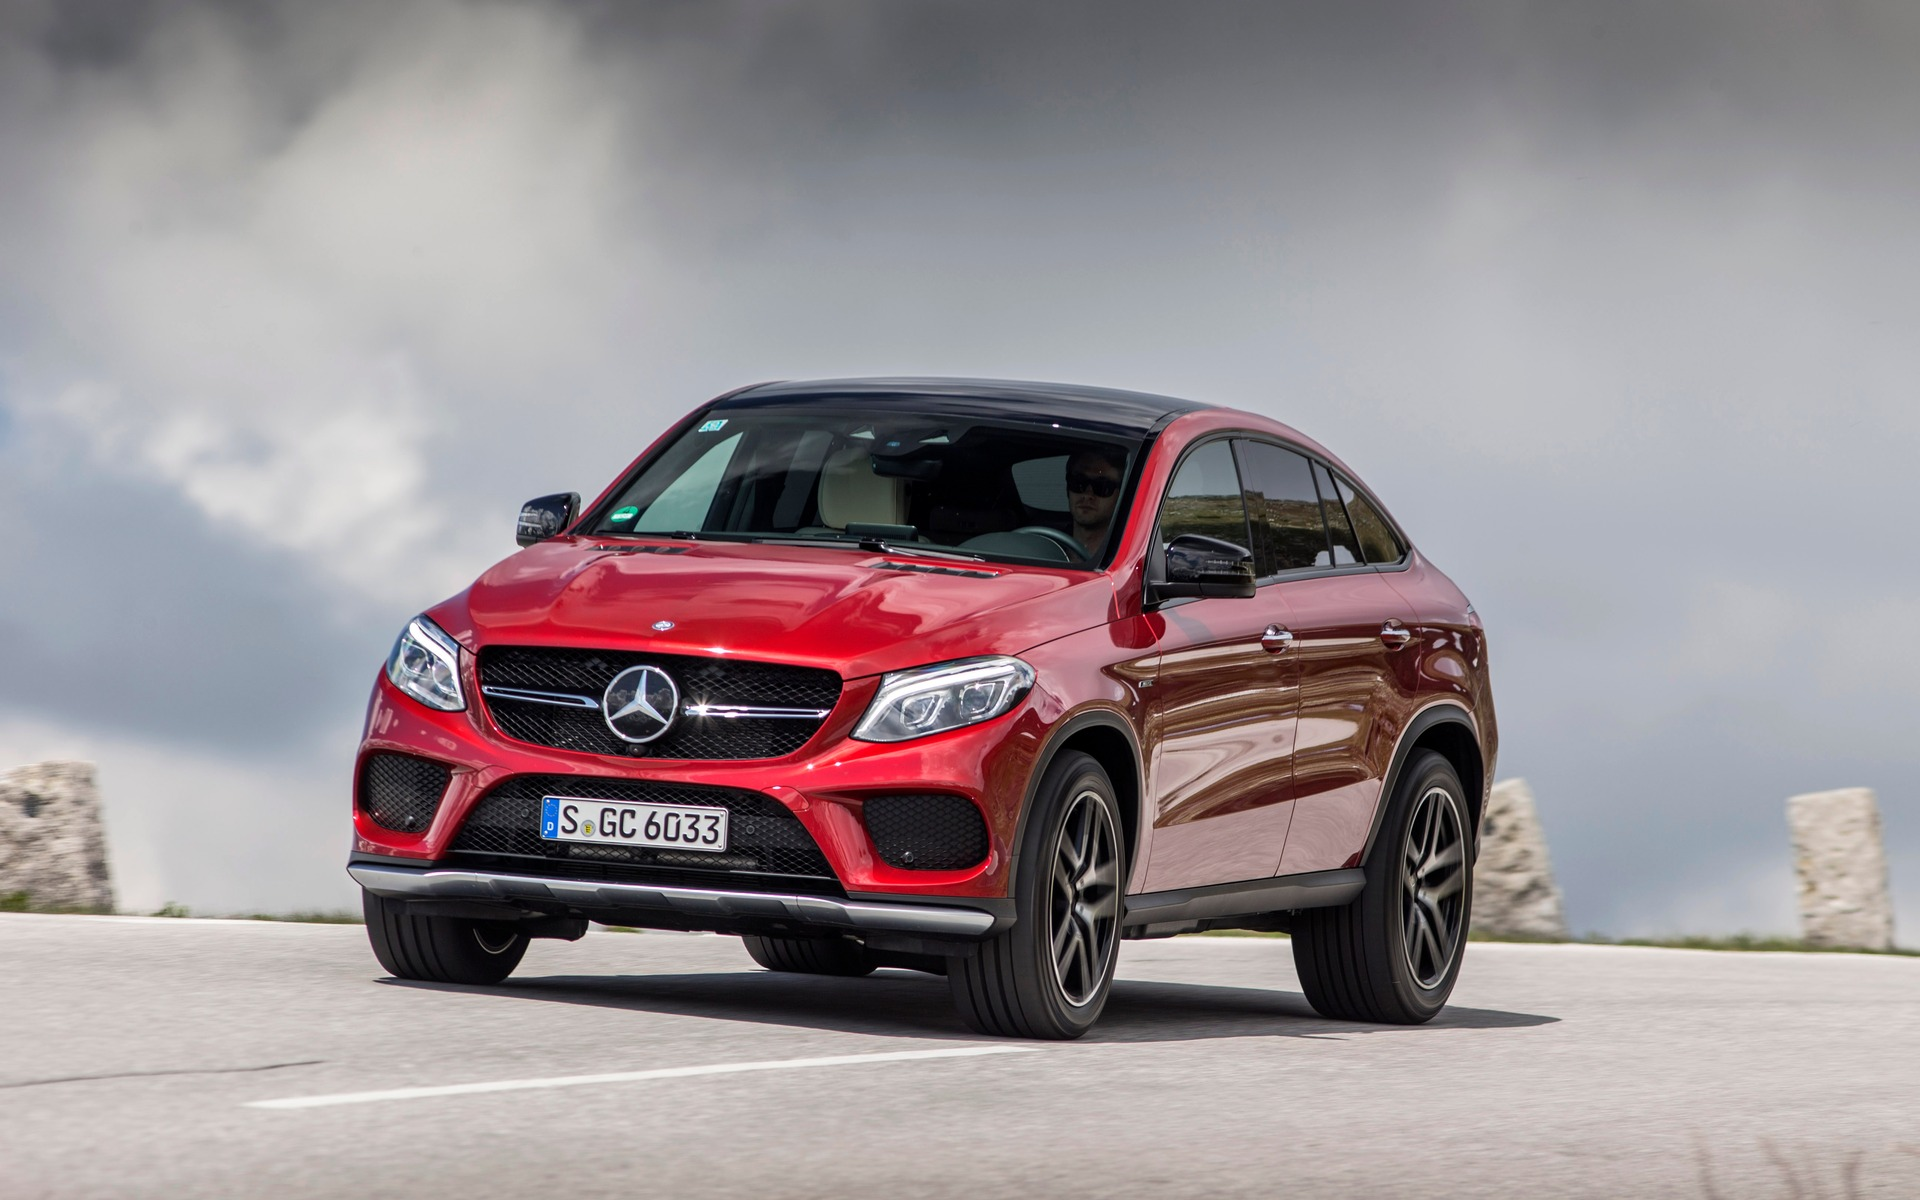 2016 mercedes benz gle class 350d 4matic specifications the car guide. Black Bedroom Furniture Sets. Home Design Ideas